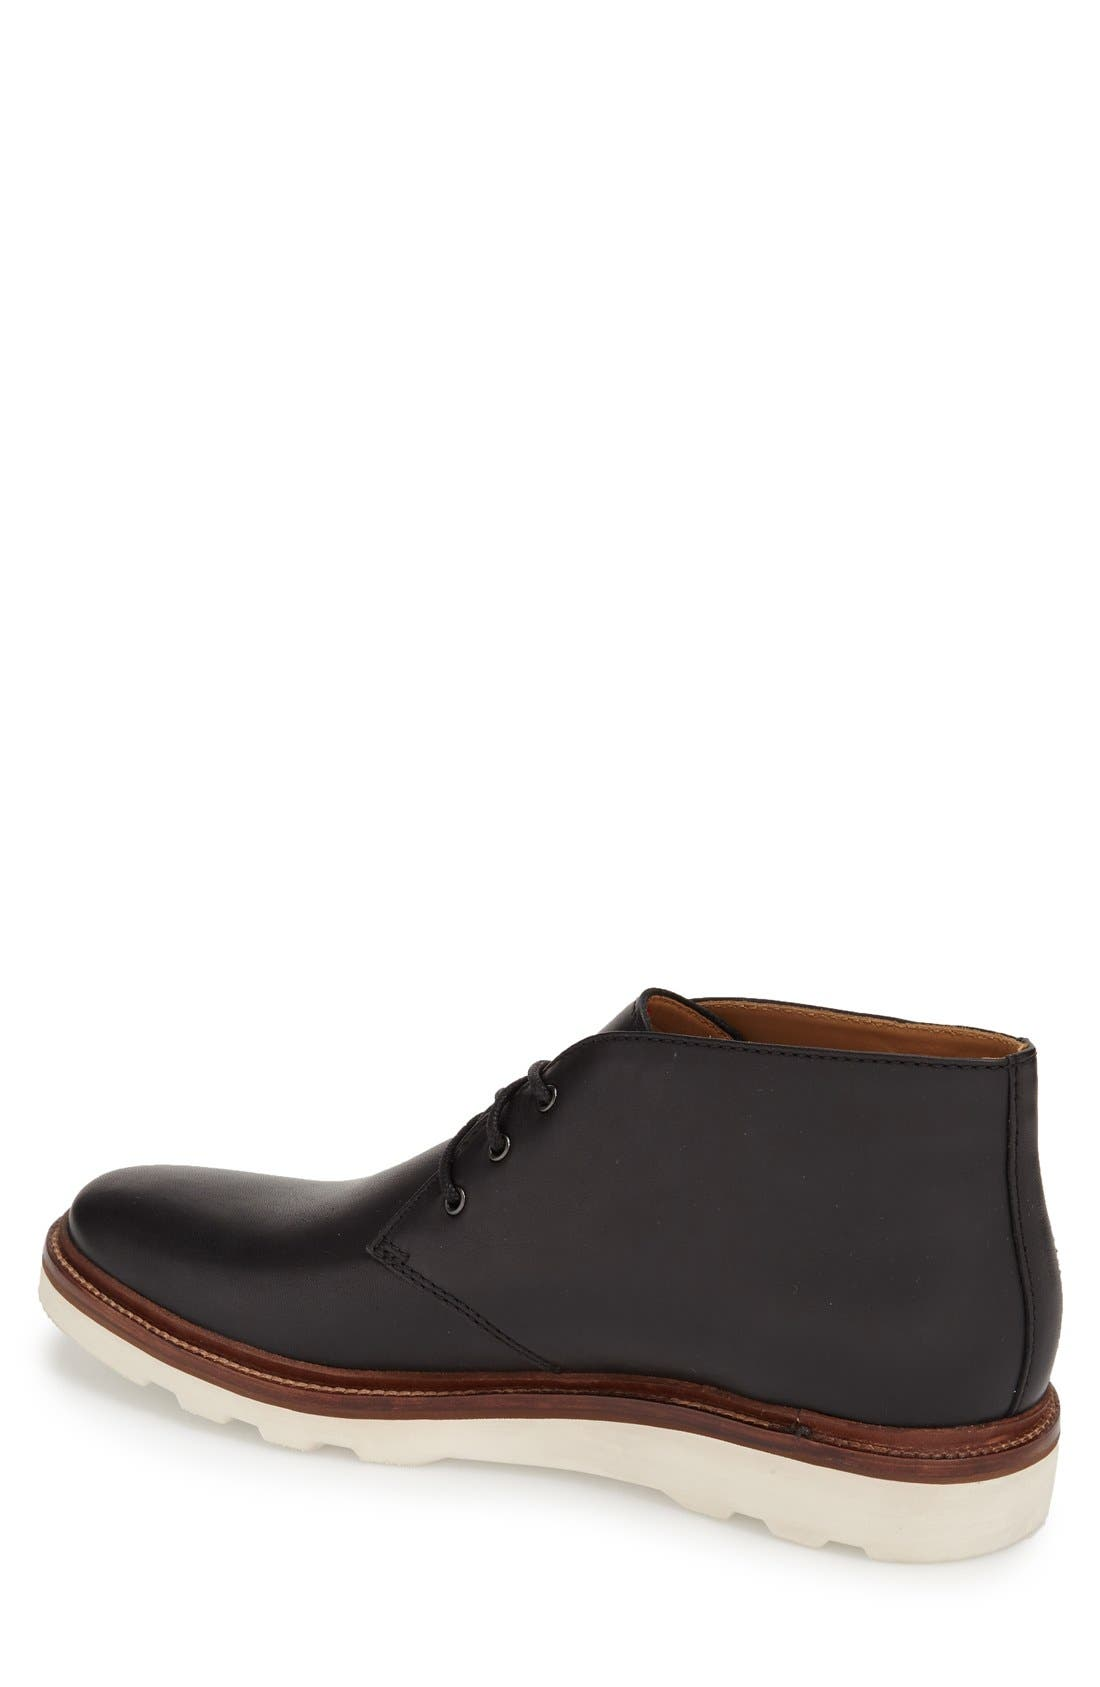 COACH,                             'Bedford' Chukka Boot,                             Alternate thumbnail 2, color,                             001